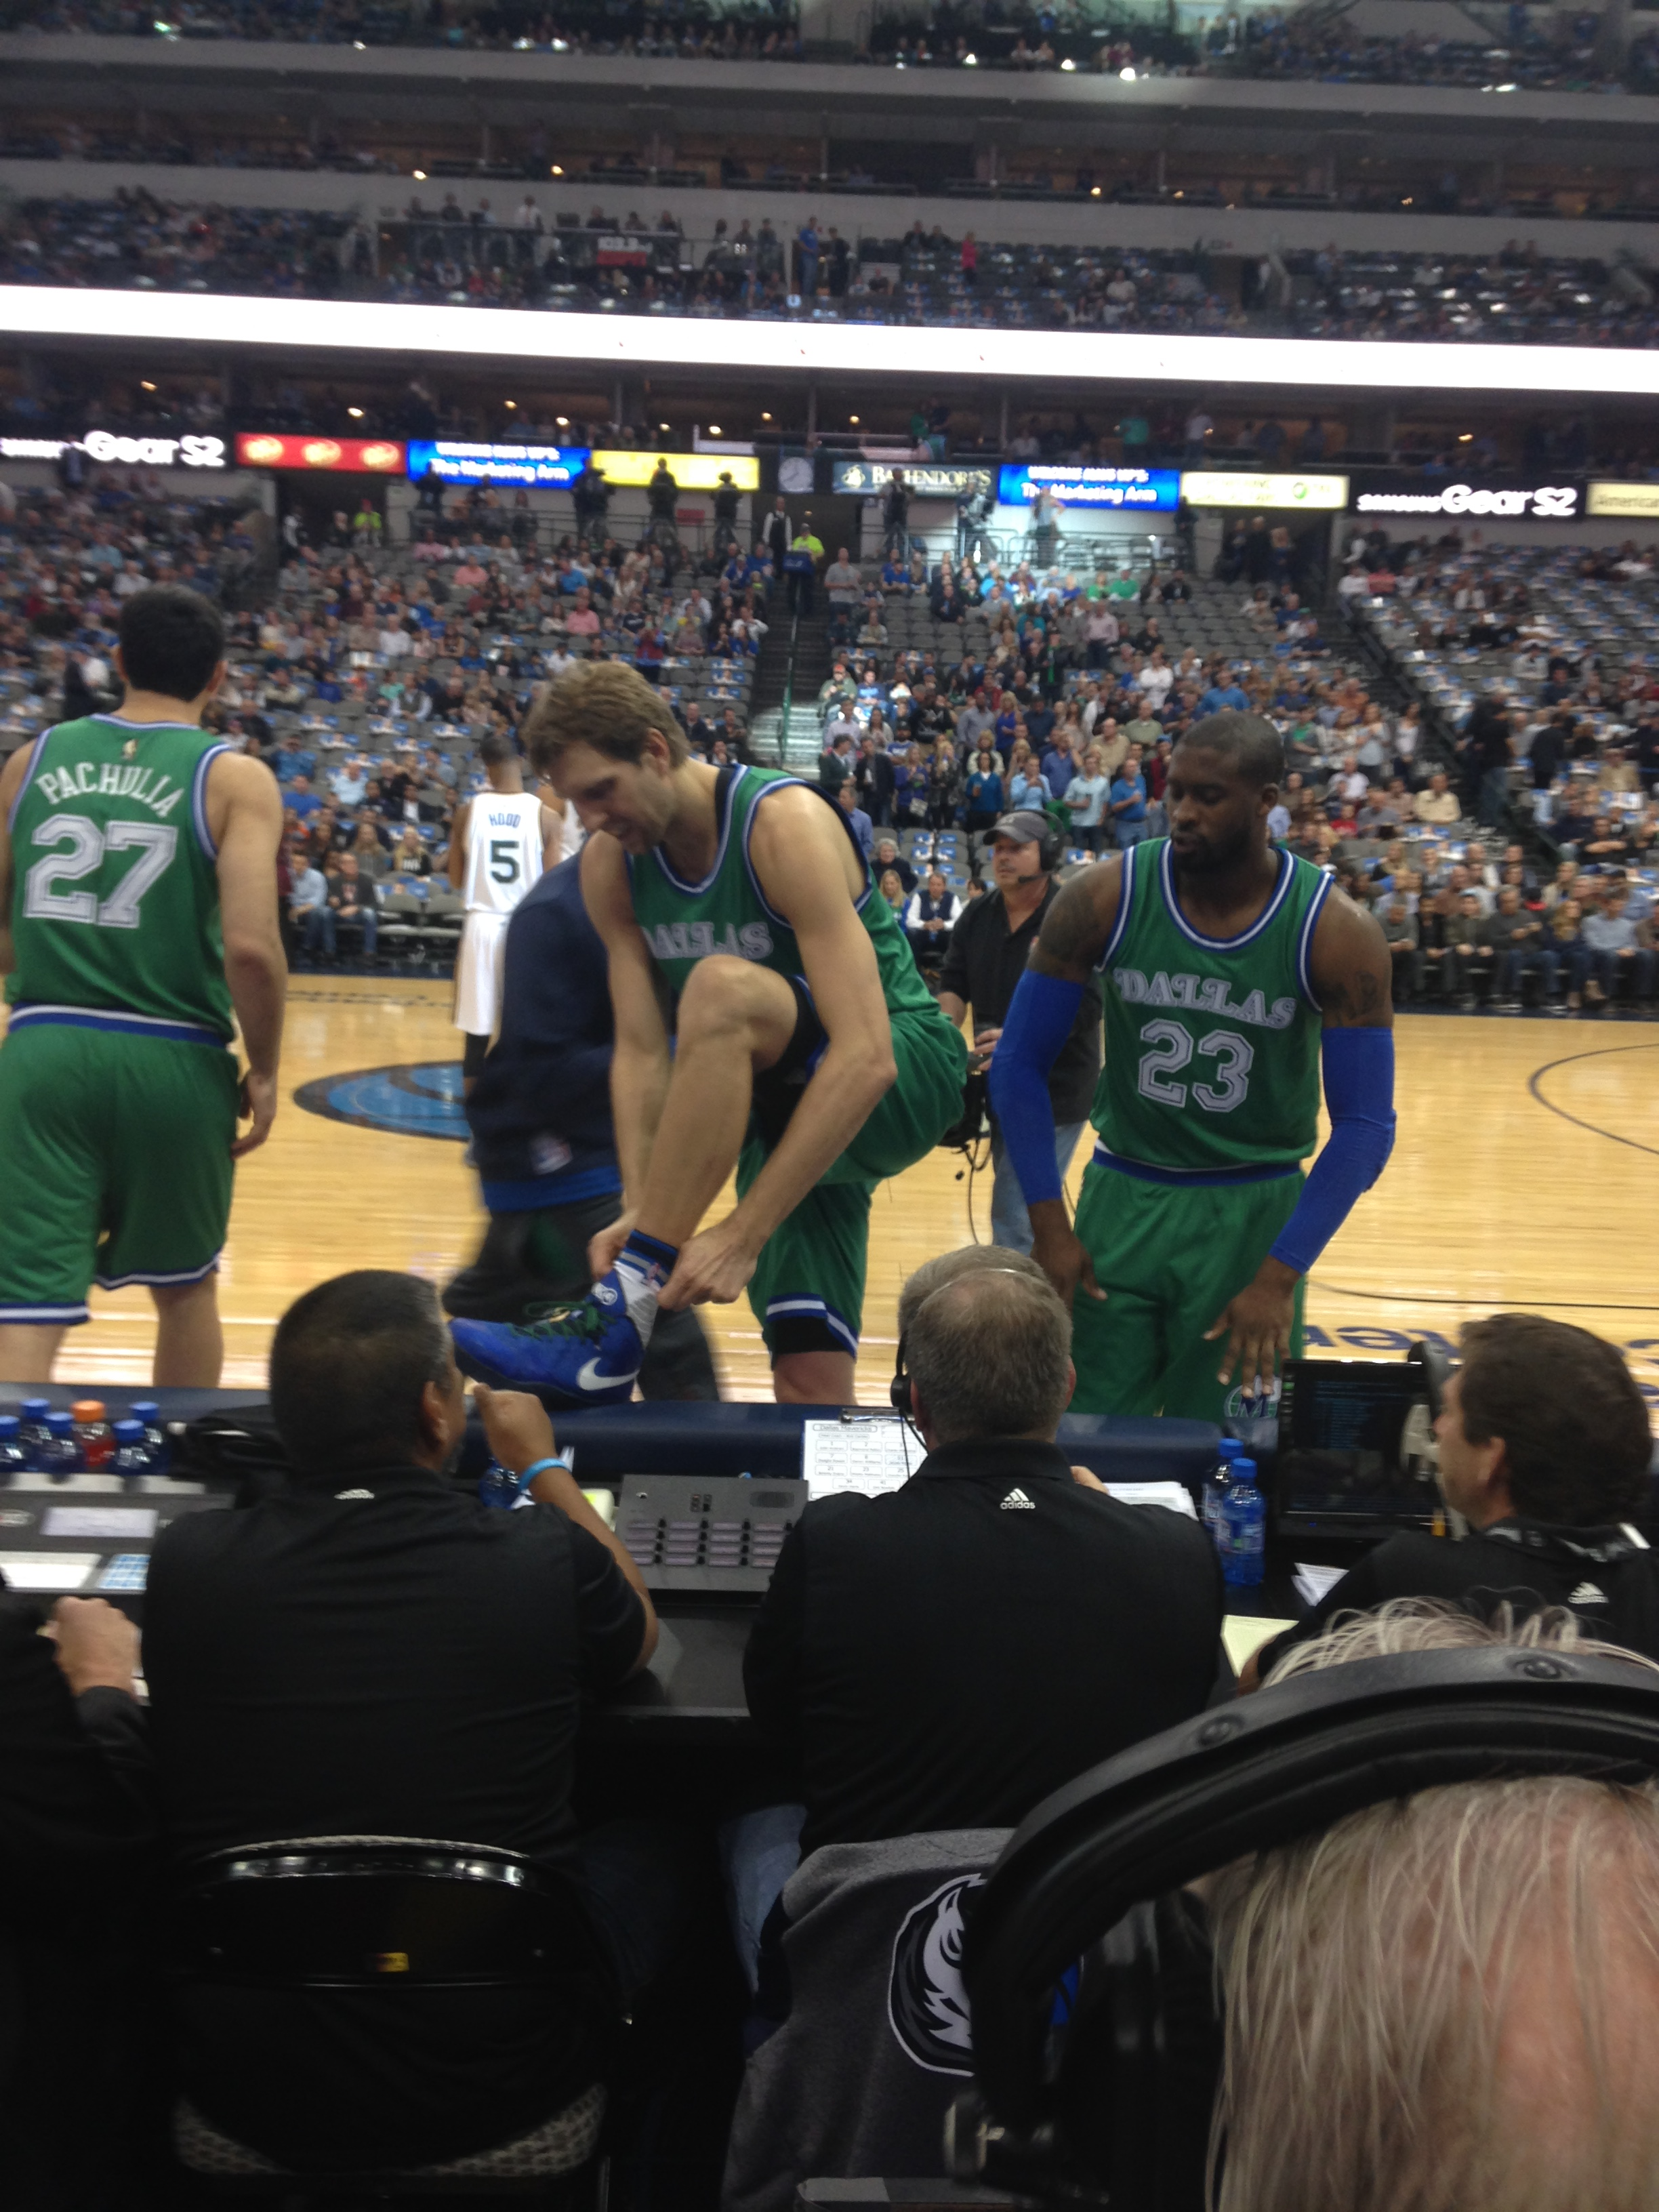 b9b54372e1c Dallas Mavericks  Check out the Mavericks  retro green Hardwood Classics  uniform  what do you think